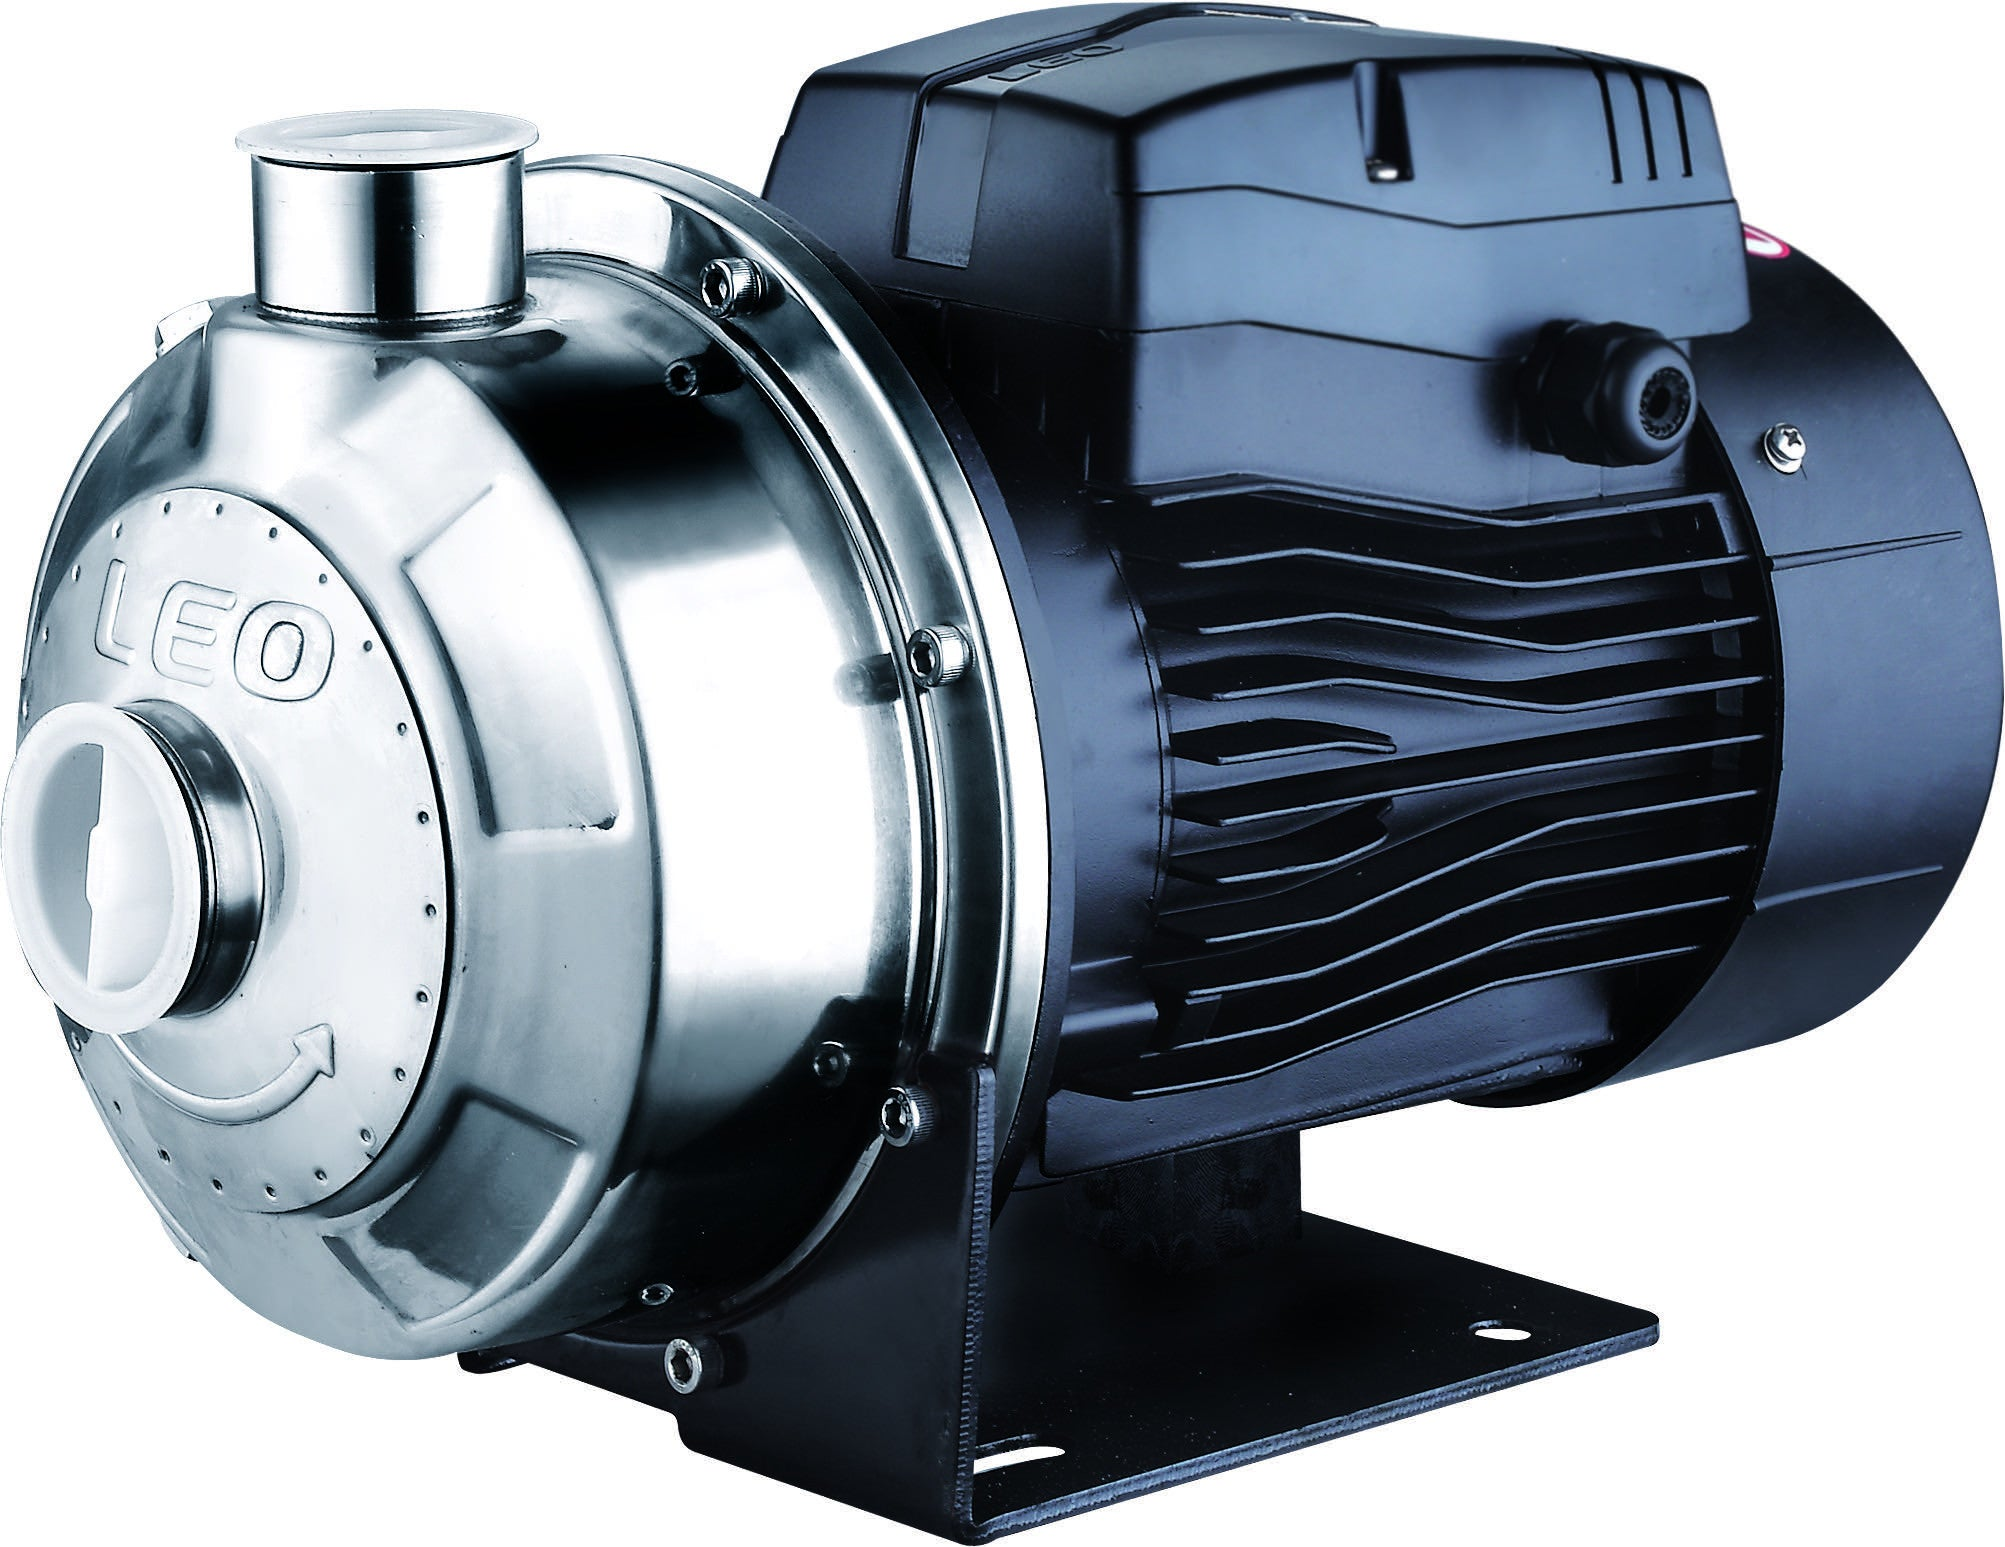 Centrifugal for Hot Water/Vat Wash - Pump & Purify